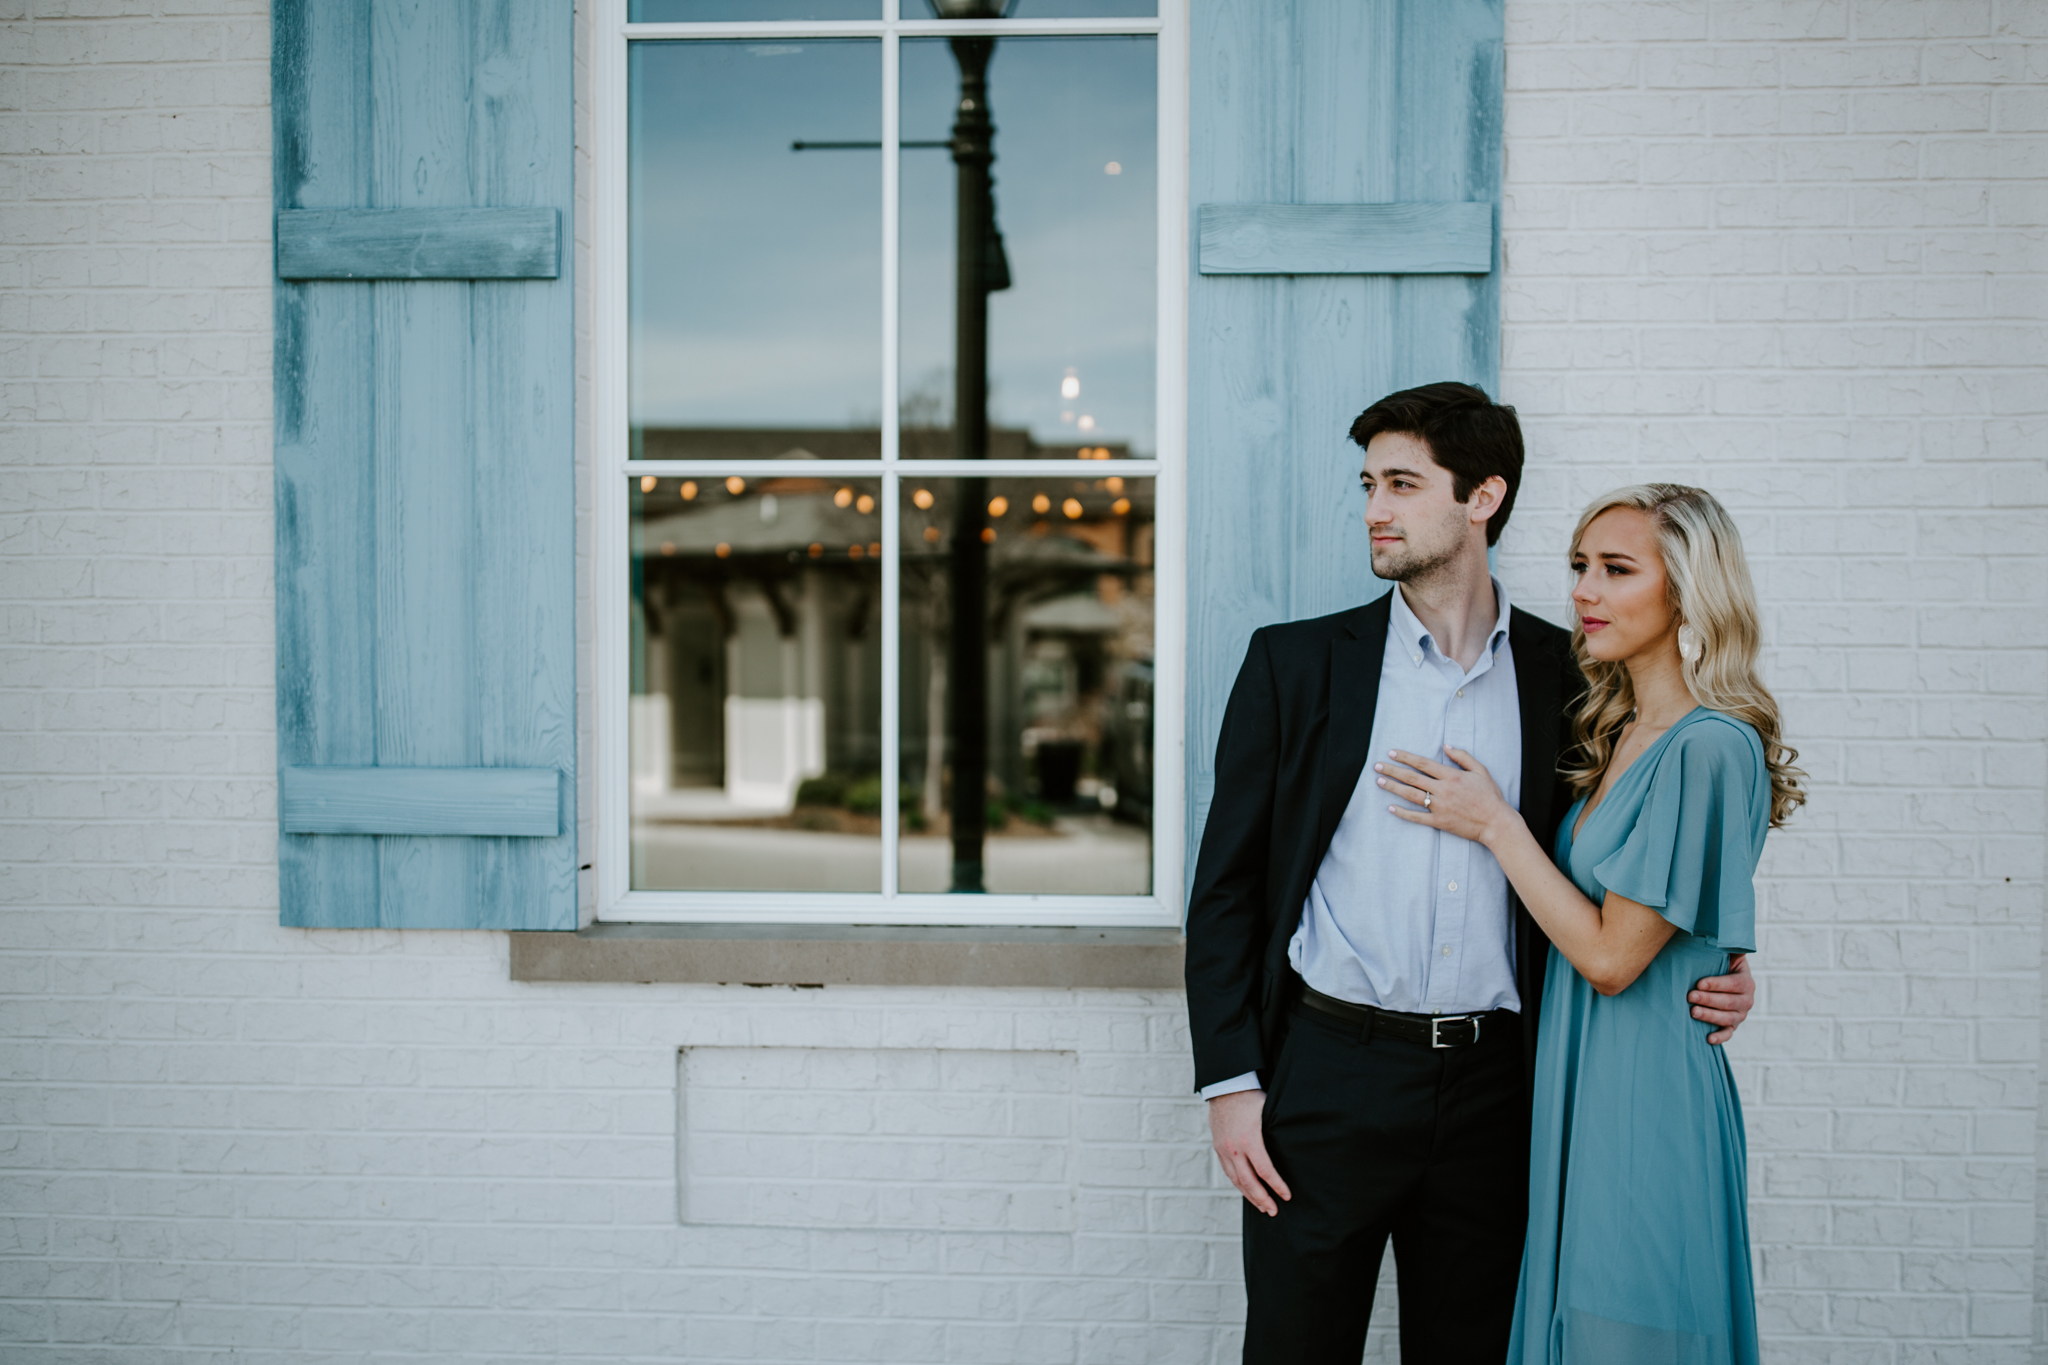 Ali-and-Jake-Chattanooga-Nashville-Tennessee-Wedding-Elopement-Photographer-69.jpg